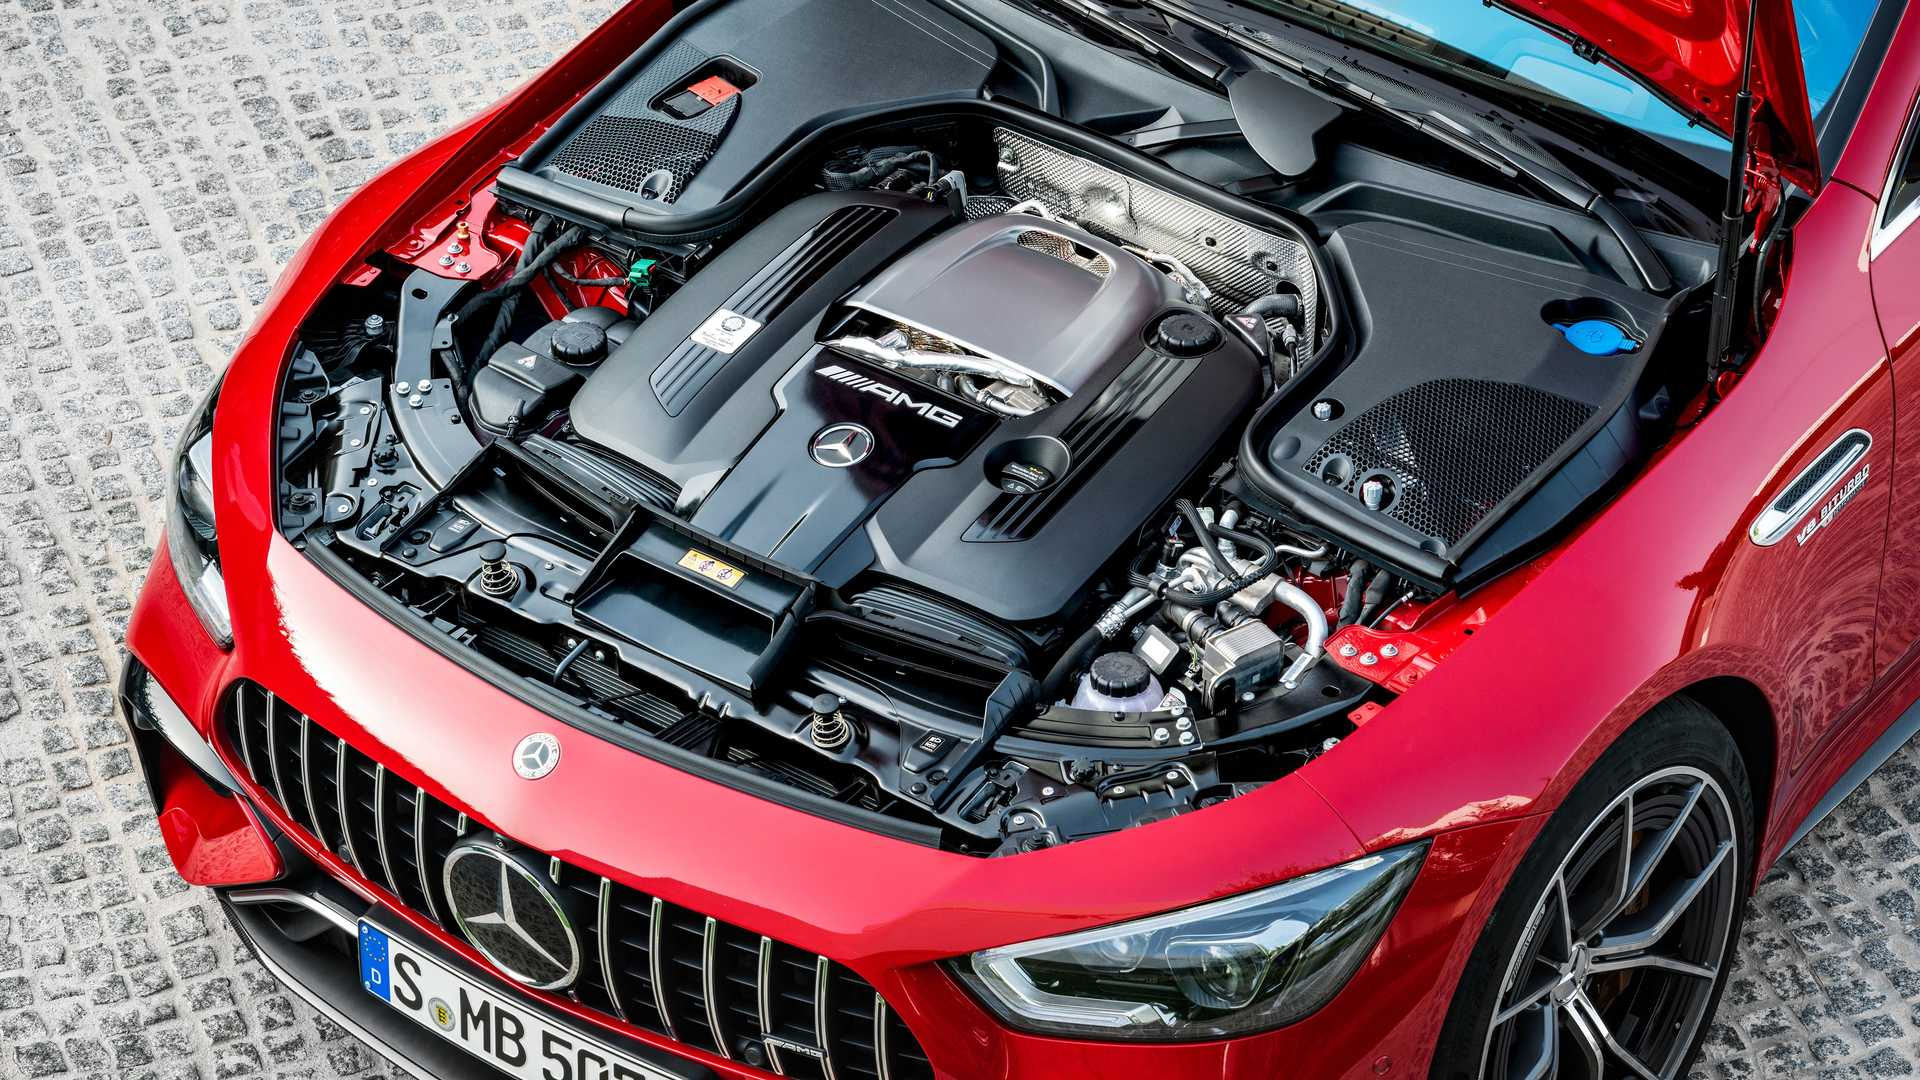 We reported several days ago that Mercedes-Benz paused new V8 car deliveries in the USA citing supply issues. Road&Track now claims that a Mercedes-AMG executive gave it a brief explanation of the situation.